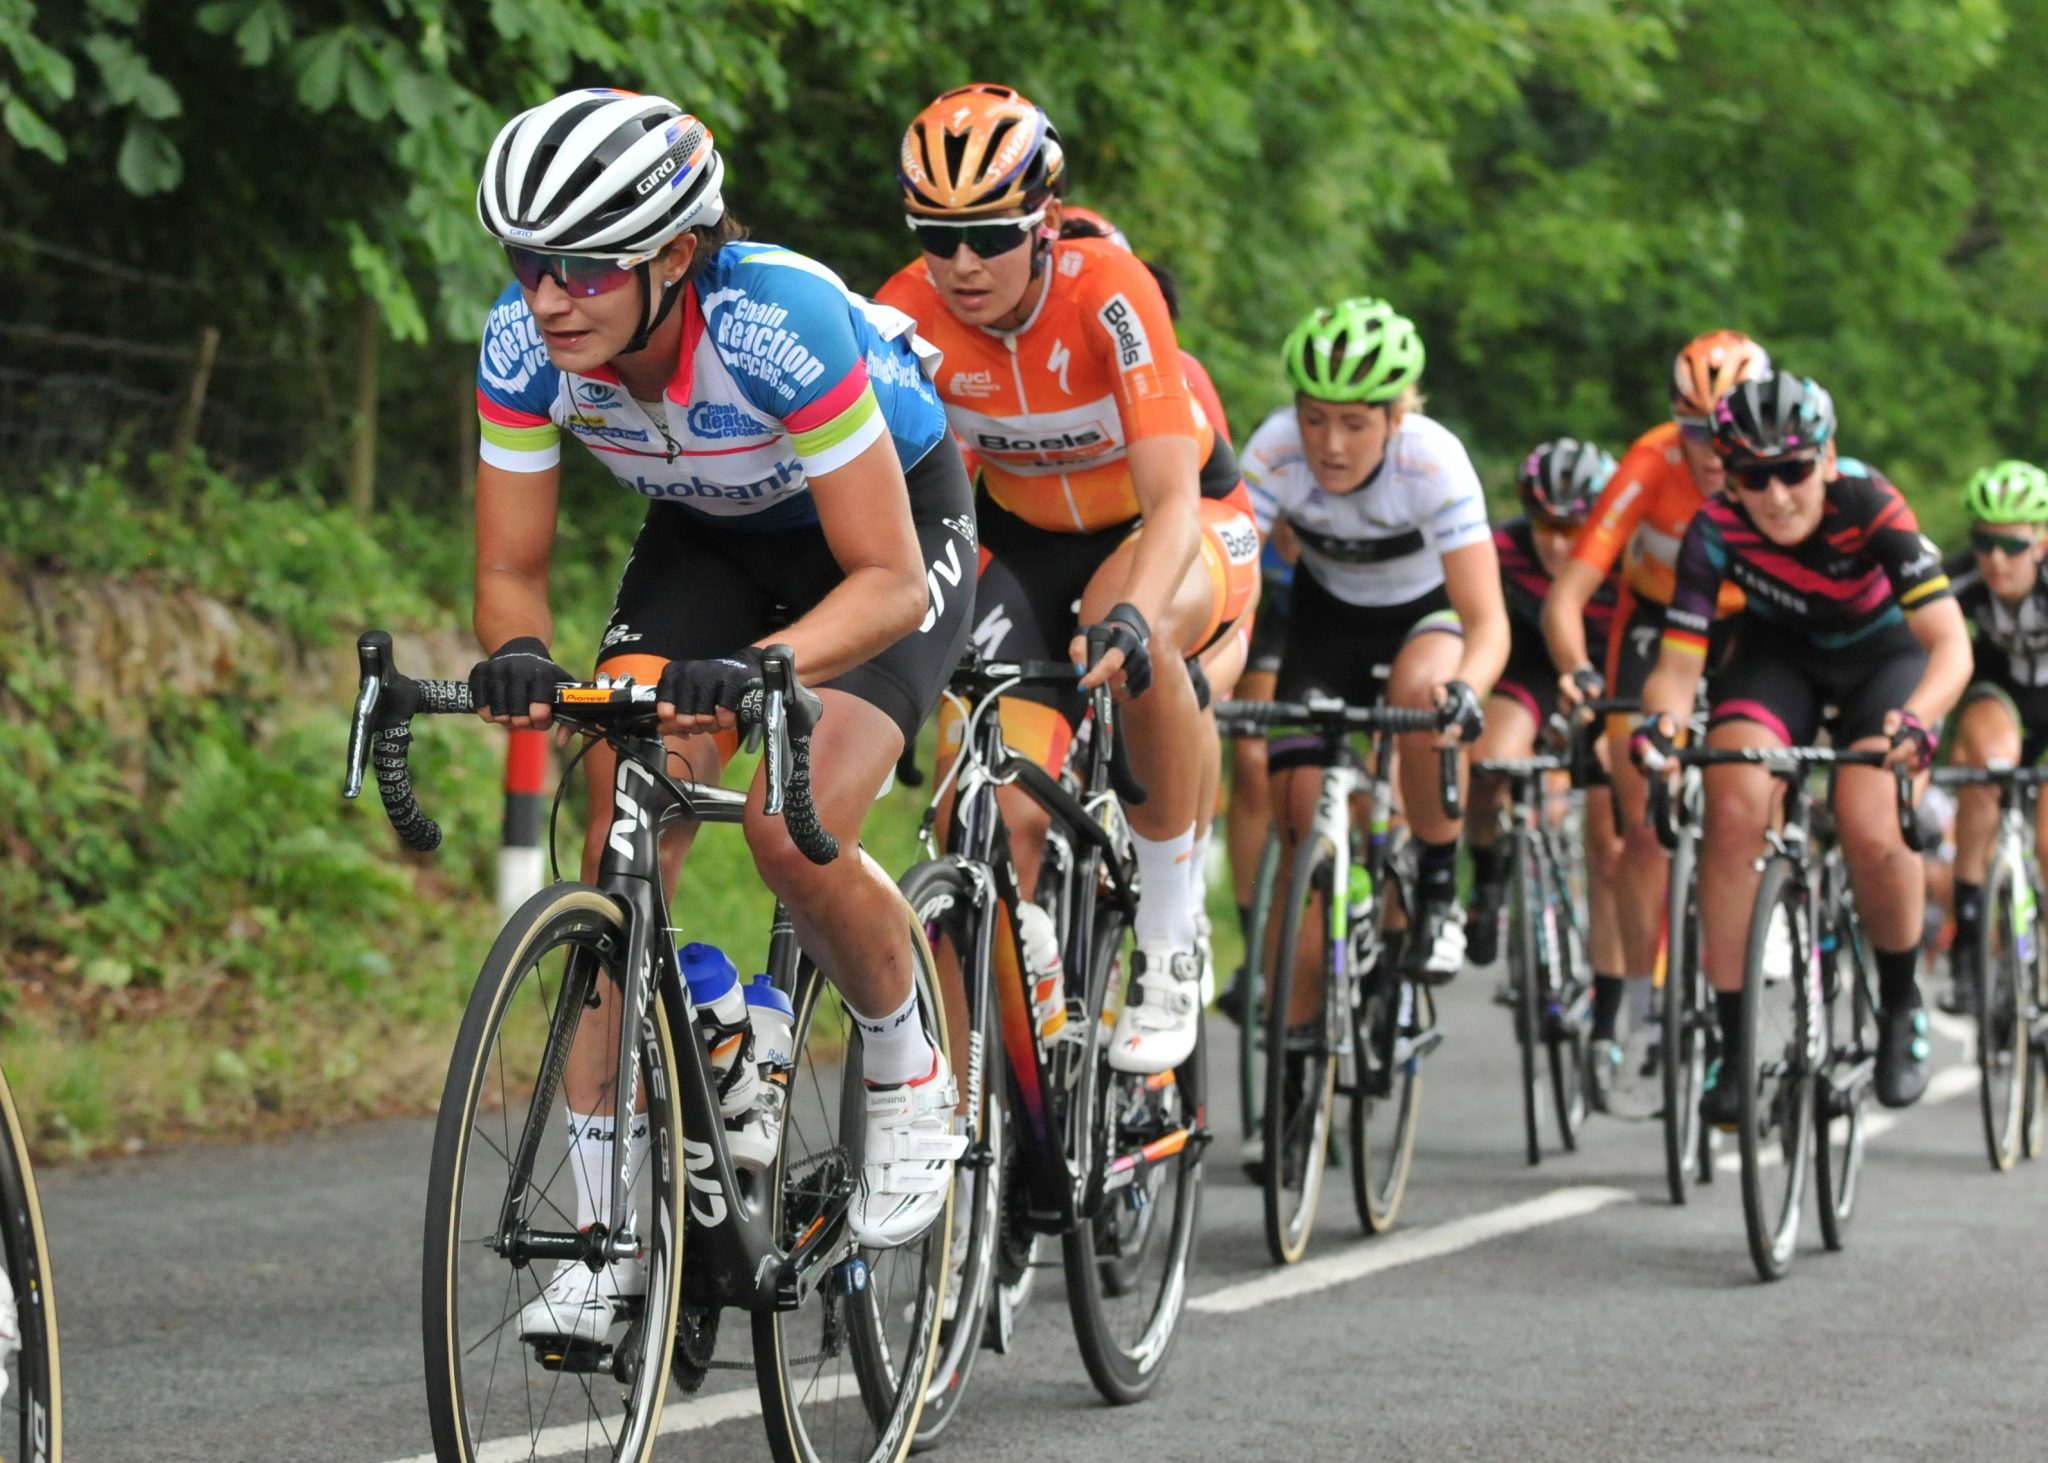 Tour's arrival brings great opportunities to get fit and active